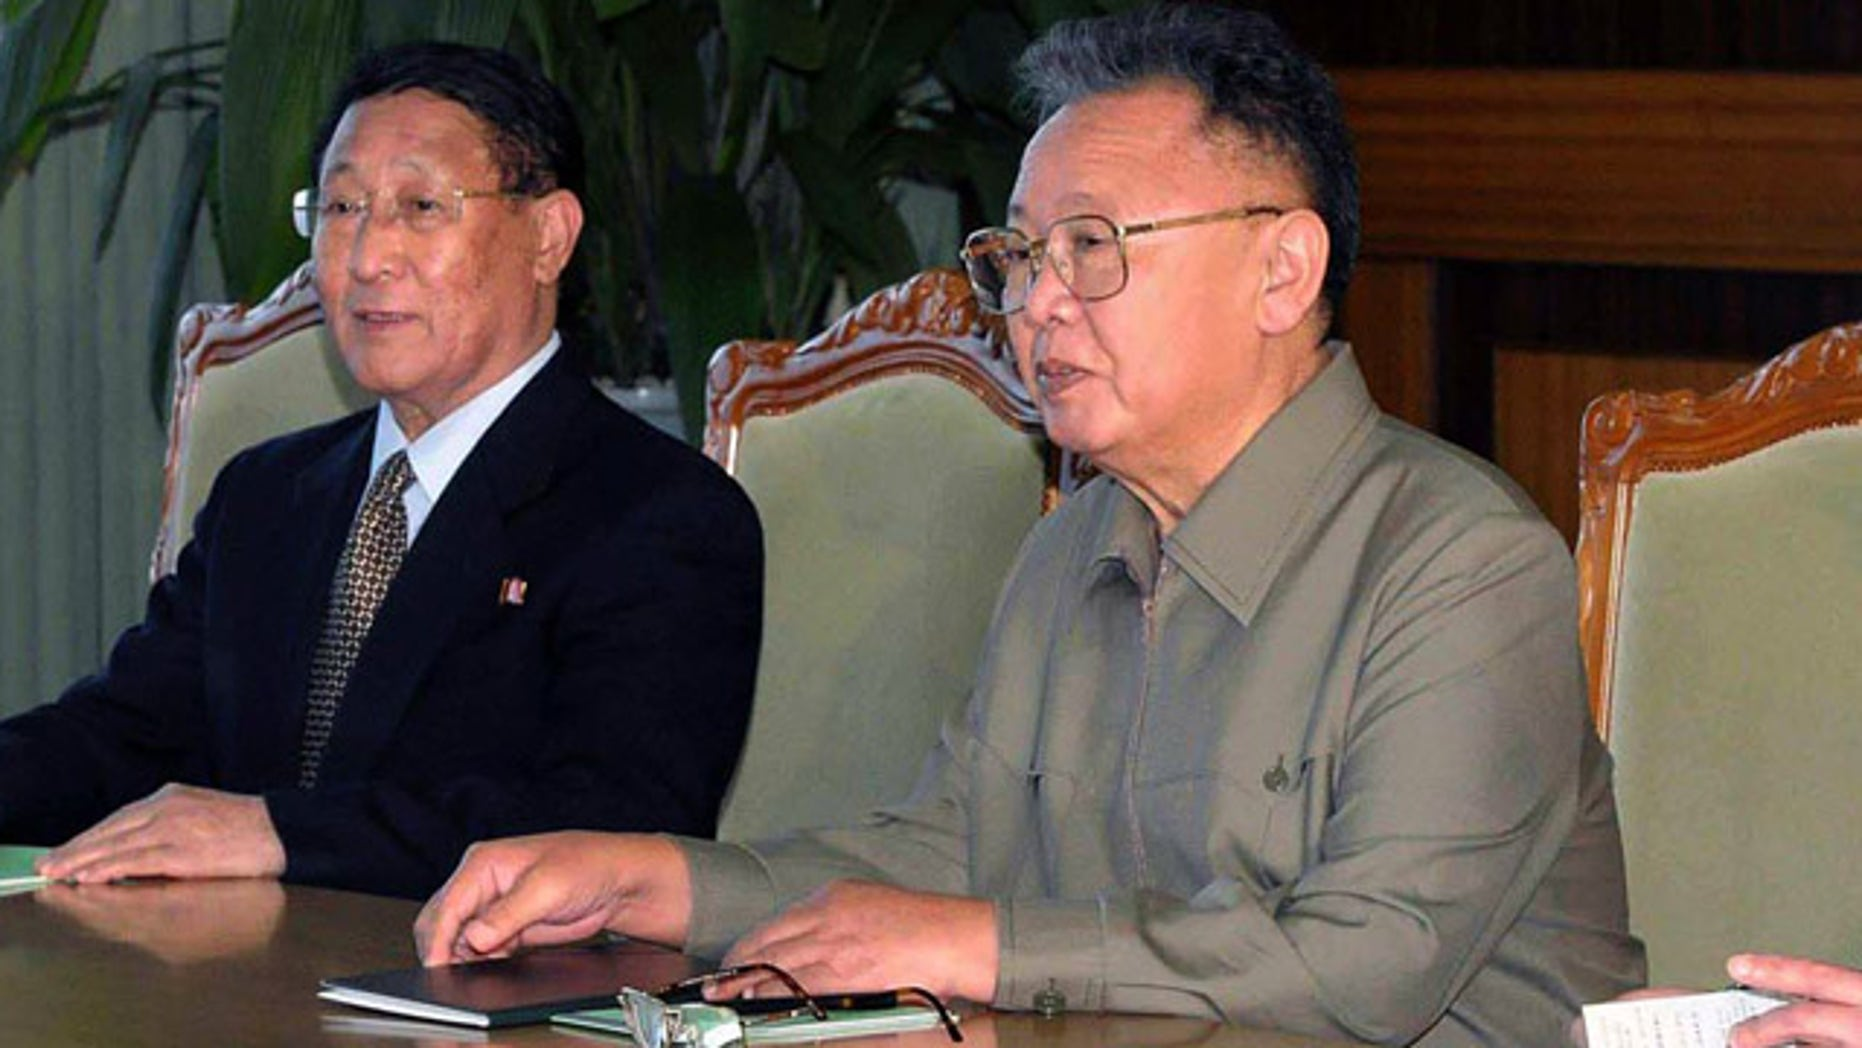 Dec. 9: In this photo released by Korean Central News Agency via Korea News Service in Tokyo, North Korean leader Kim Jong Il, right, holds a talk with Chinese State Councilor Dai Bingguo, unseen, during a meeting in Pyongyang, North Korea.